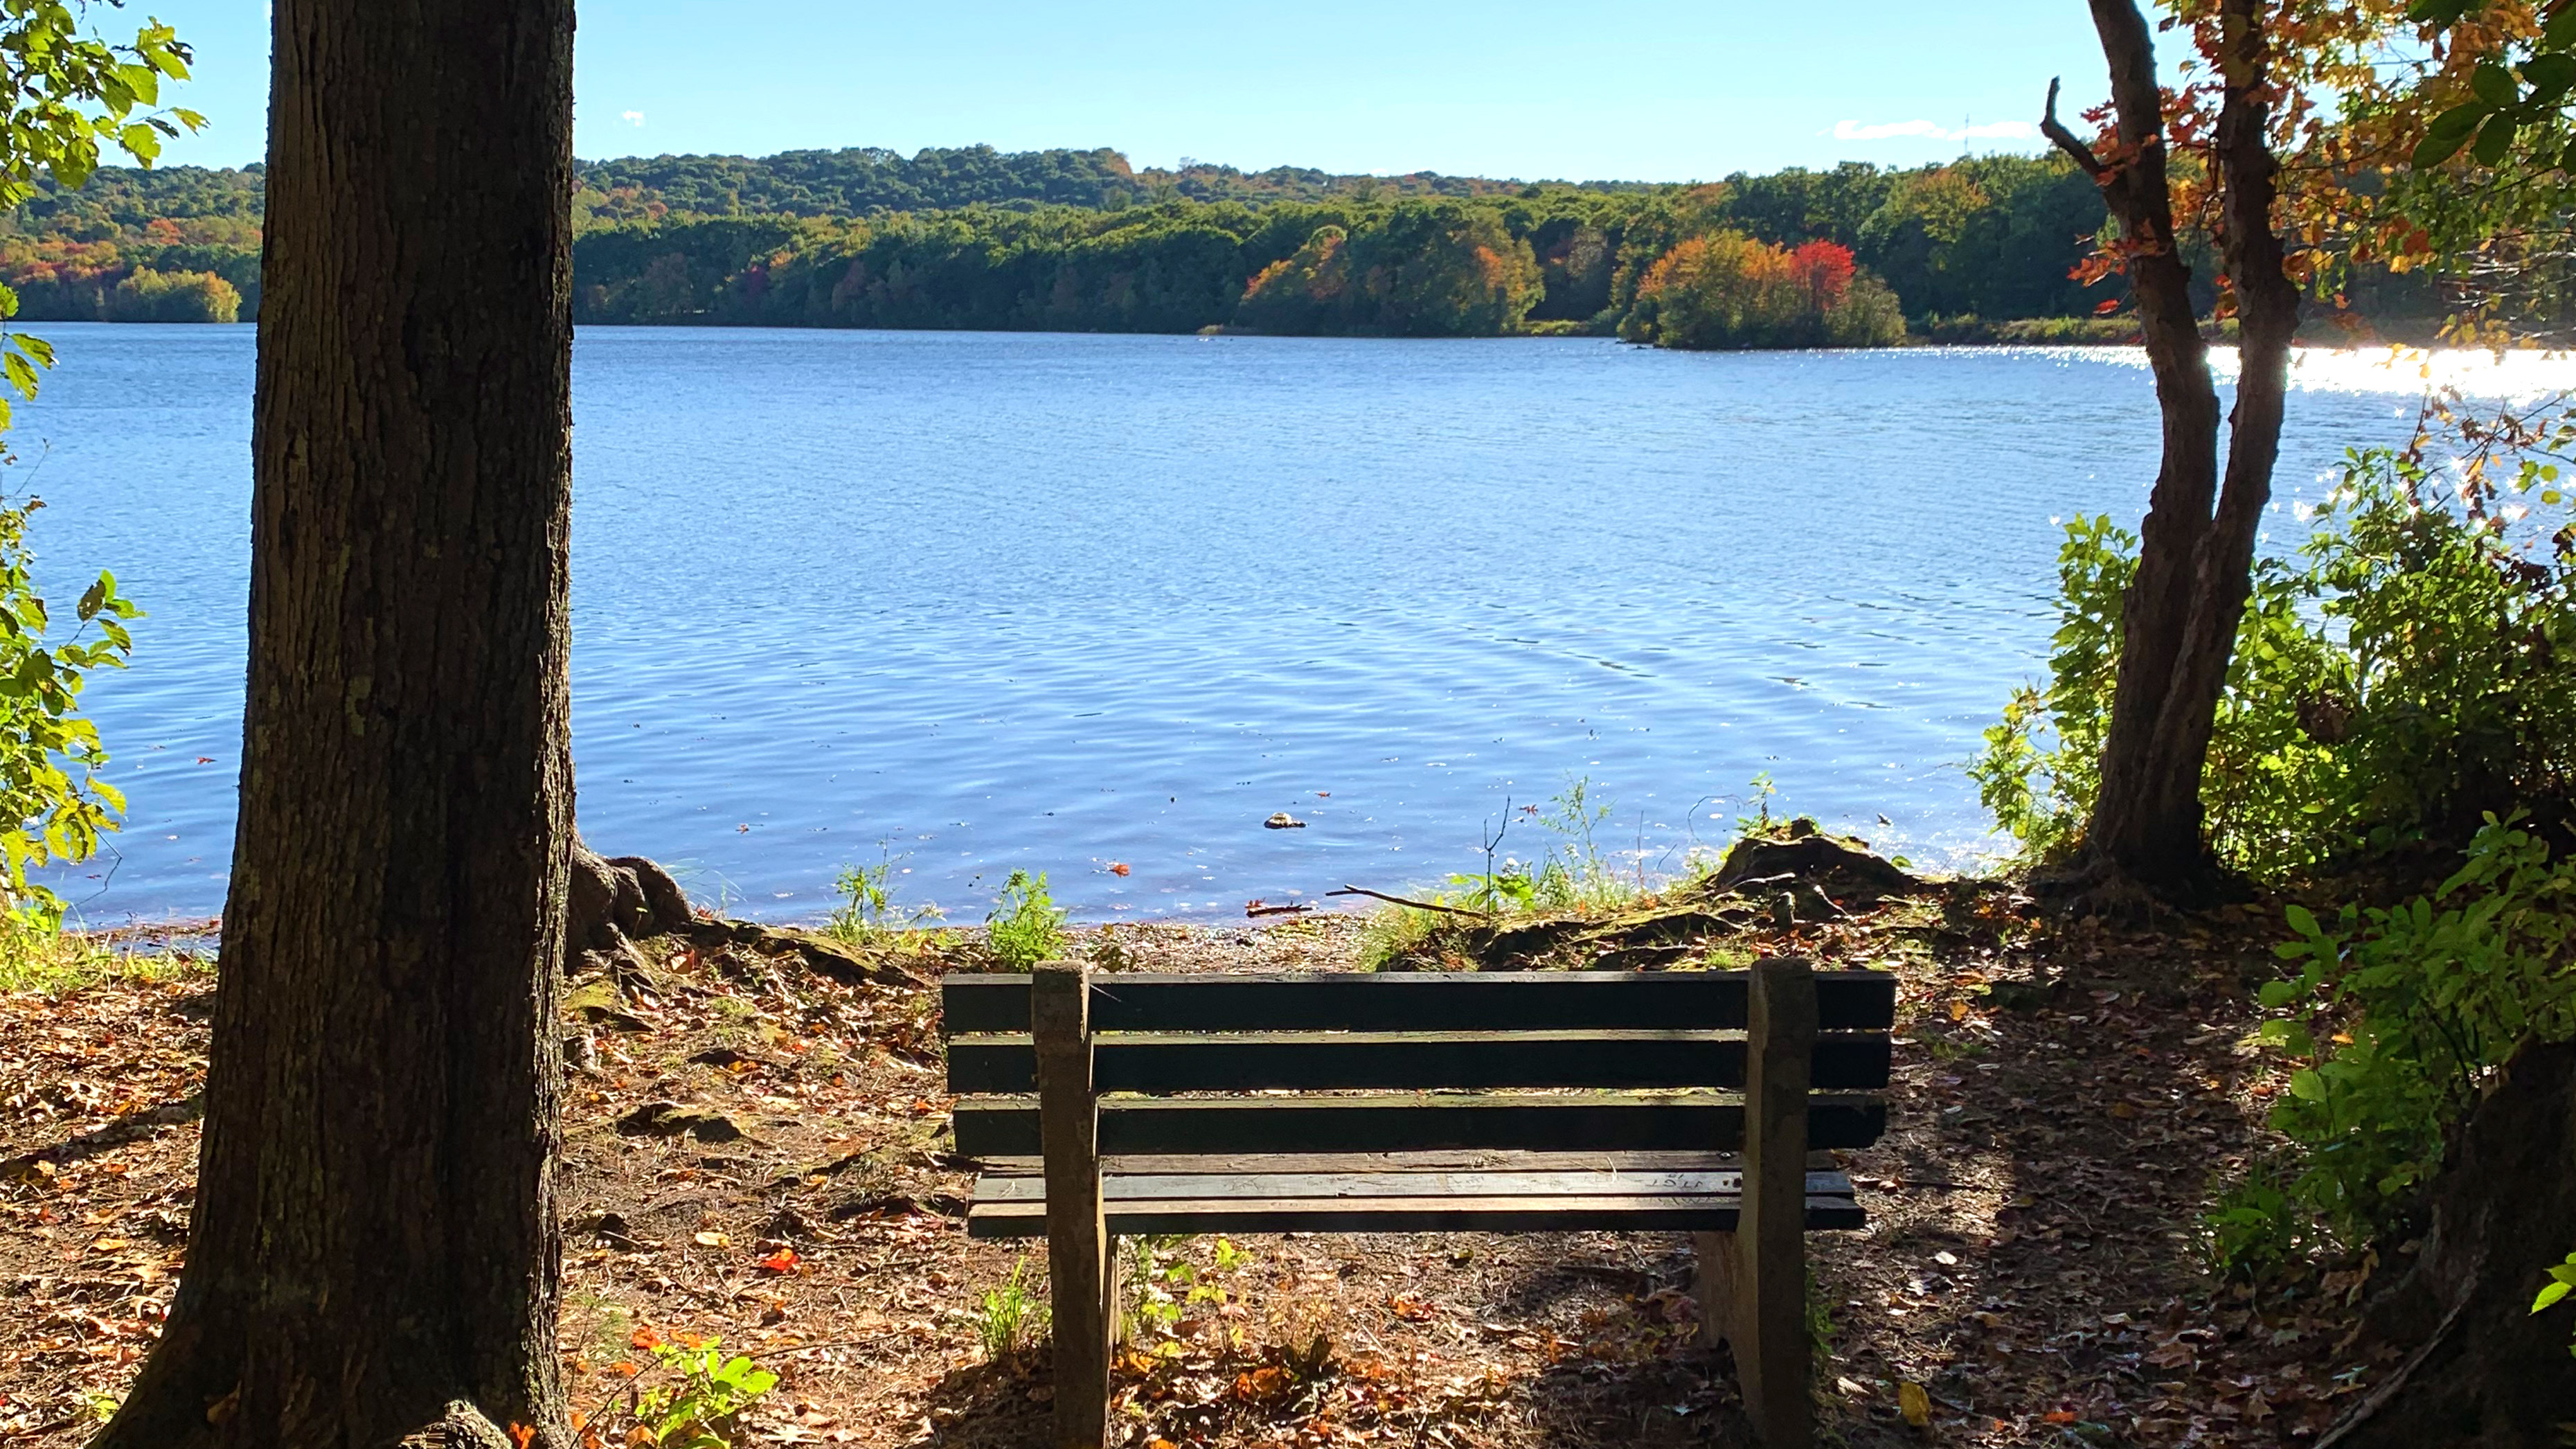 Bench overlooking the water at Scoville Reservoir in Wolcott, CT